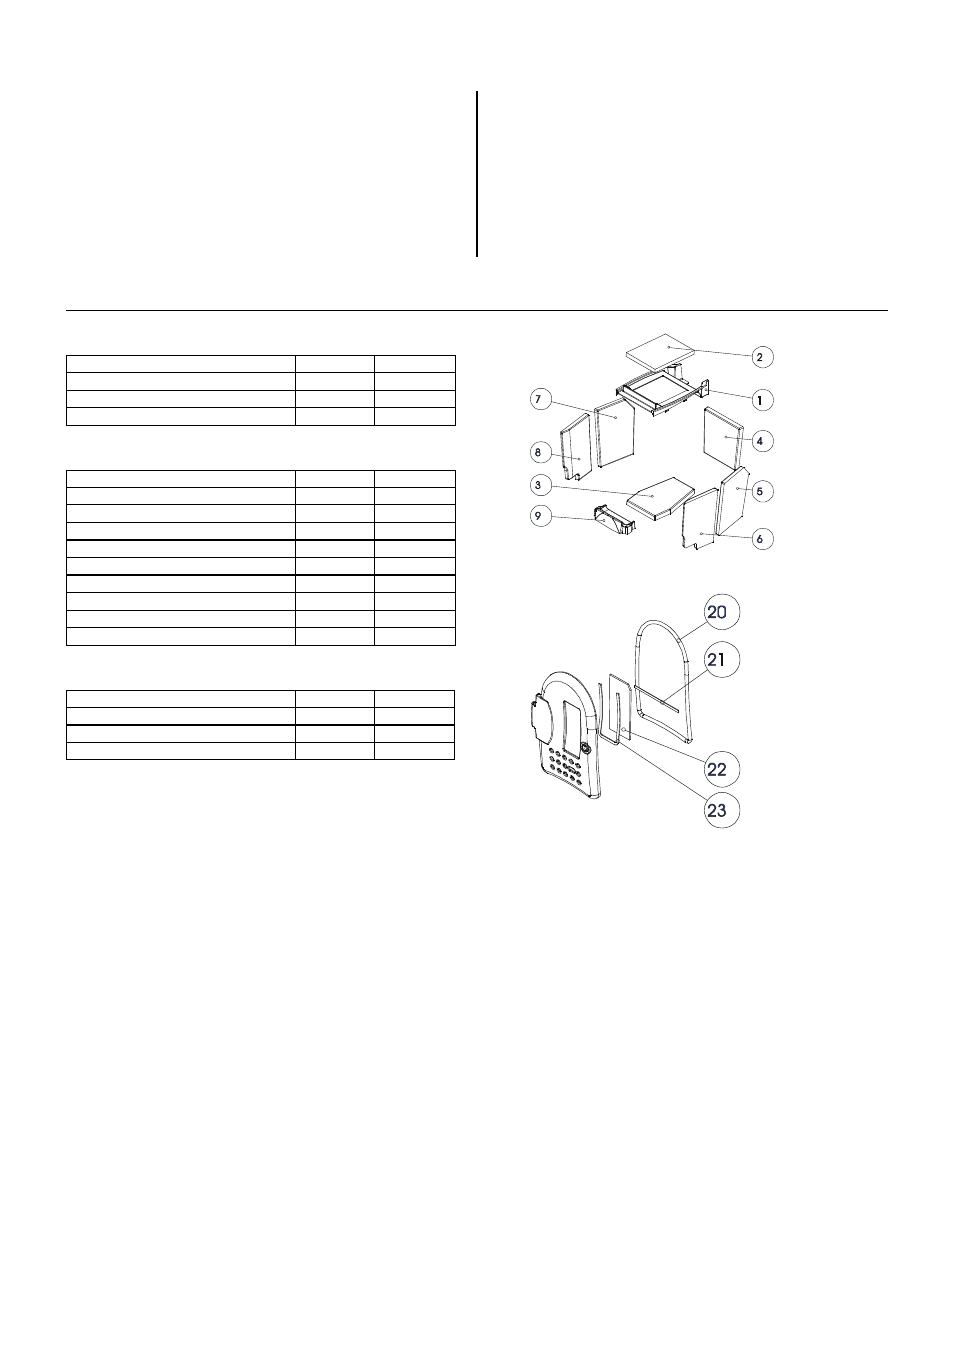 The most important spares—overview, Gaskets, Keramott ...